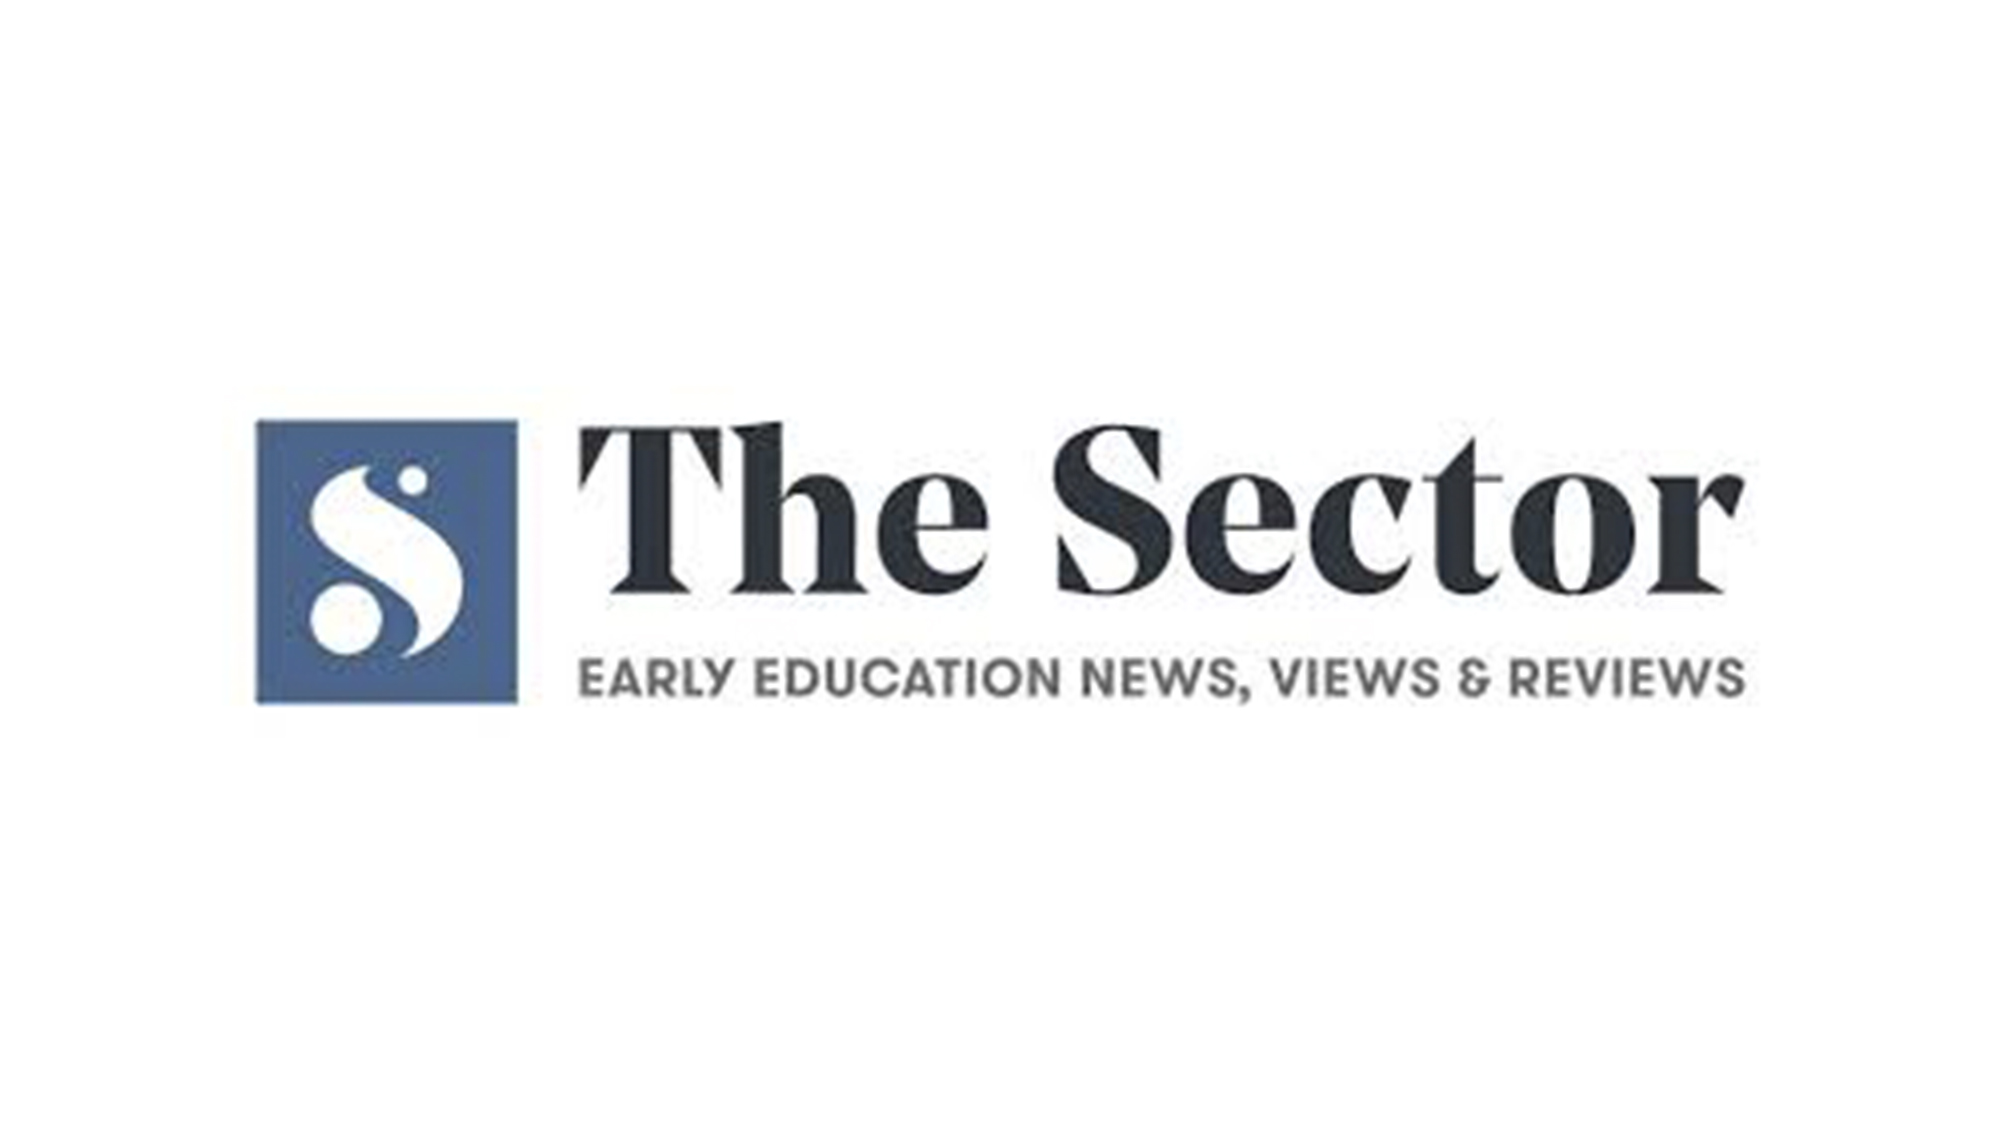 The Sector logo